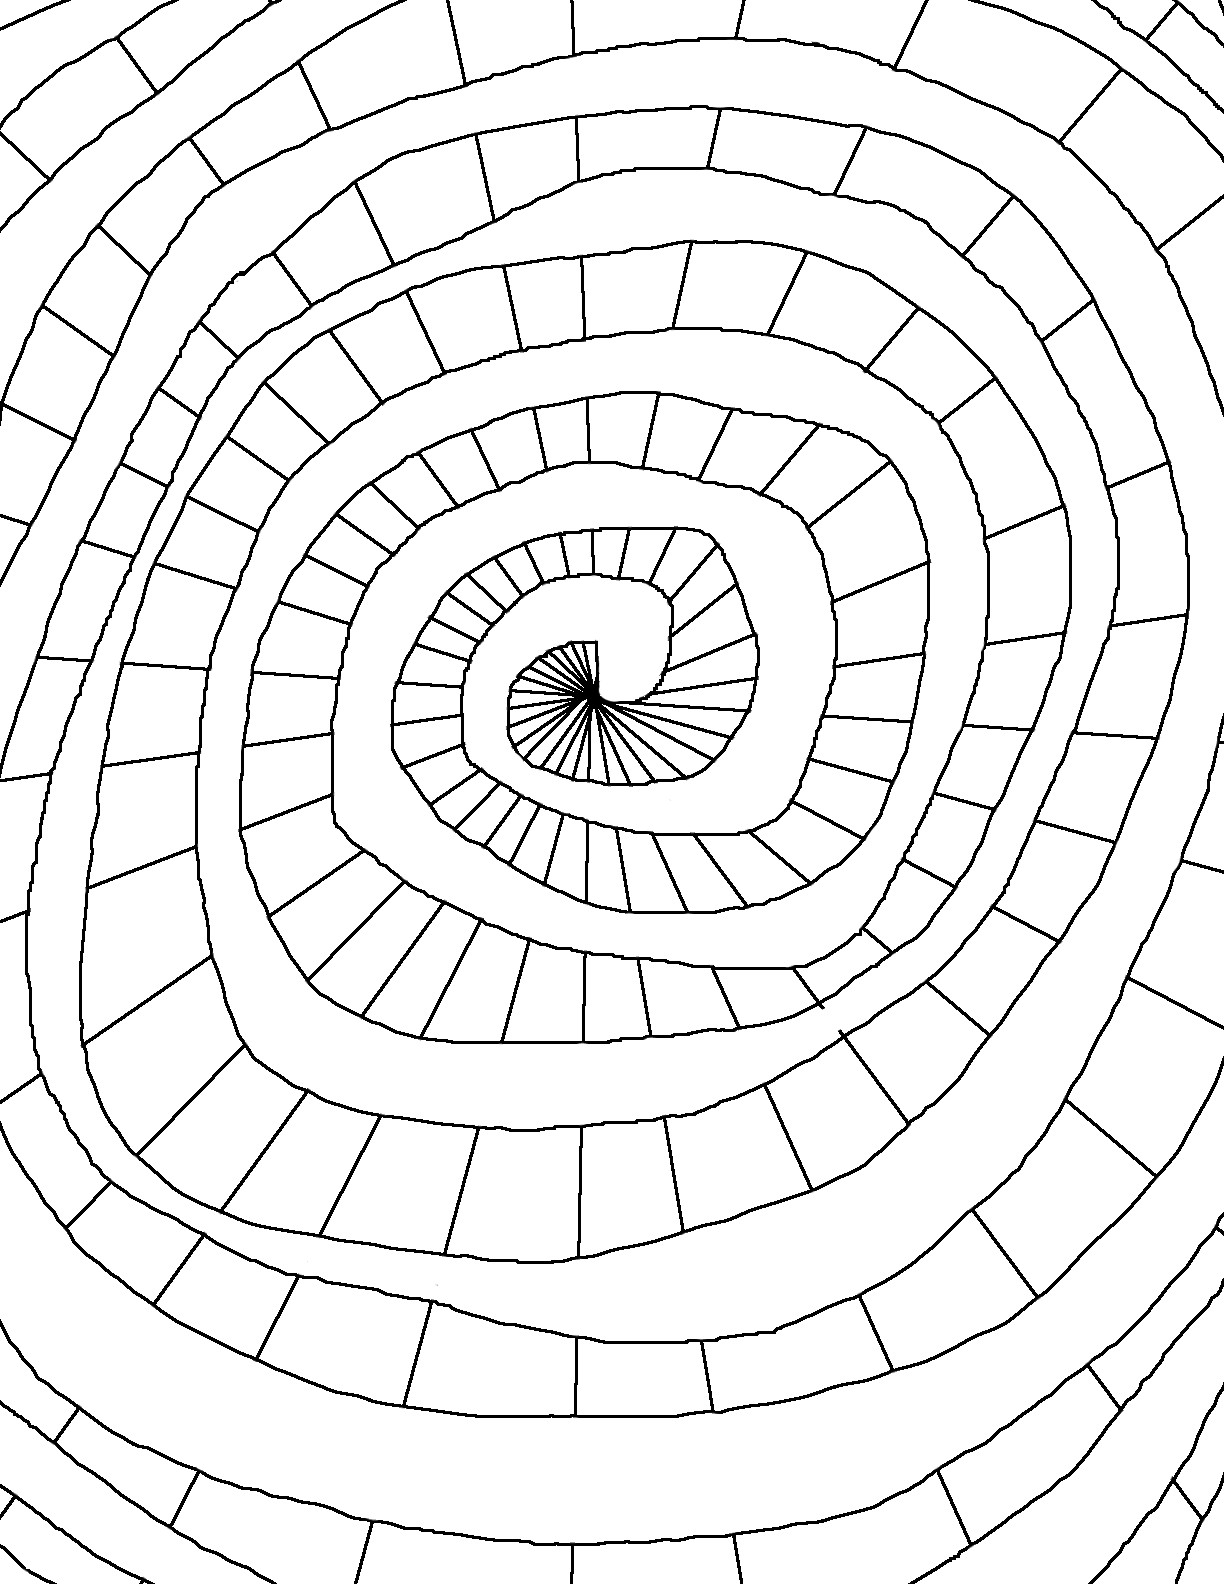 spiral pictures to color spiral coloring download spiral coloring for free 2019 to pictures color spiral